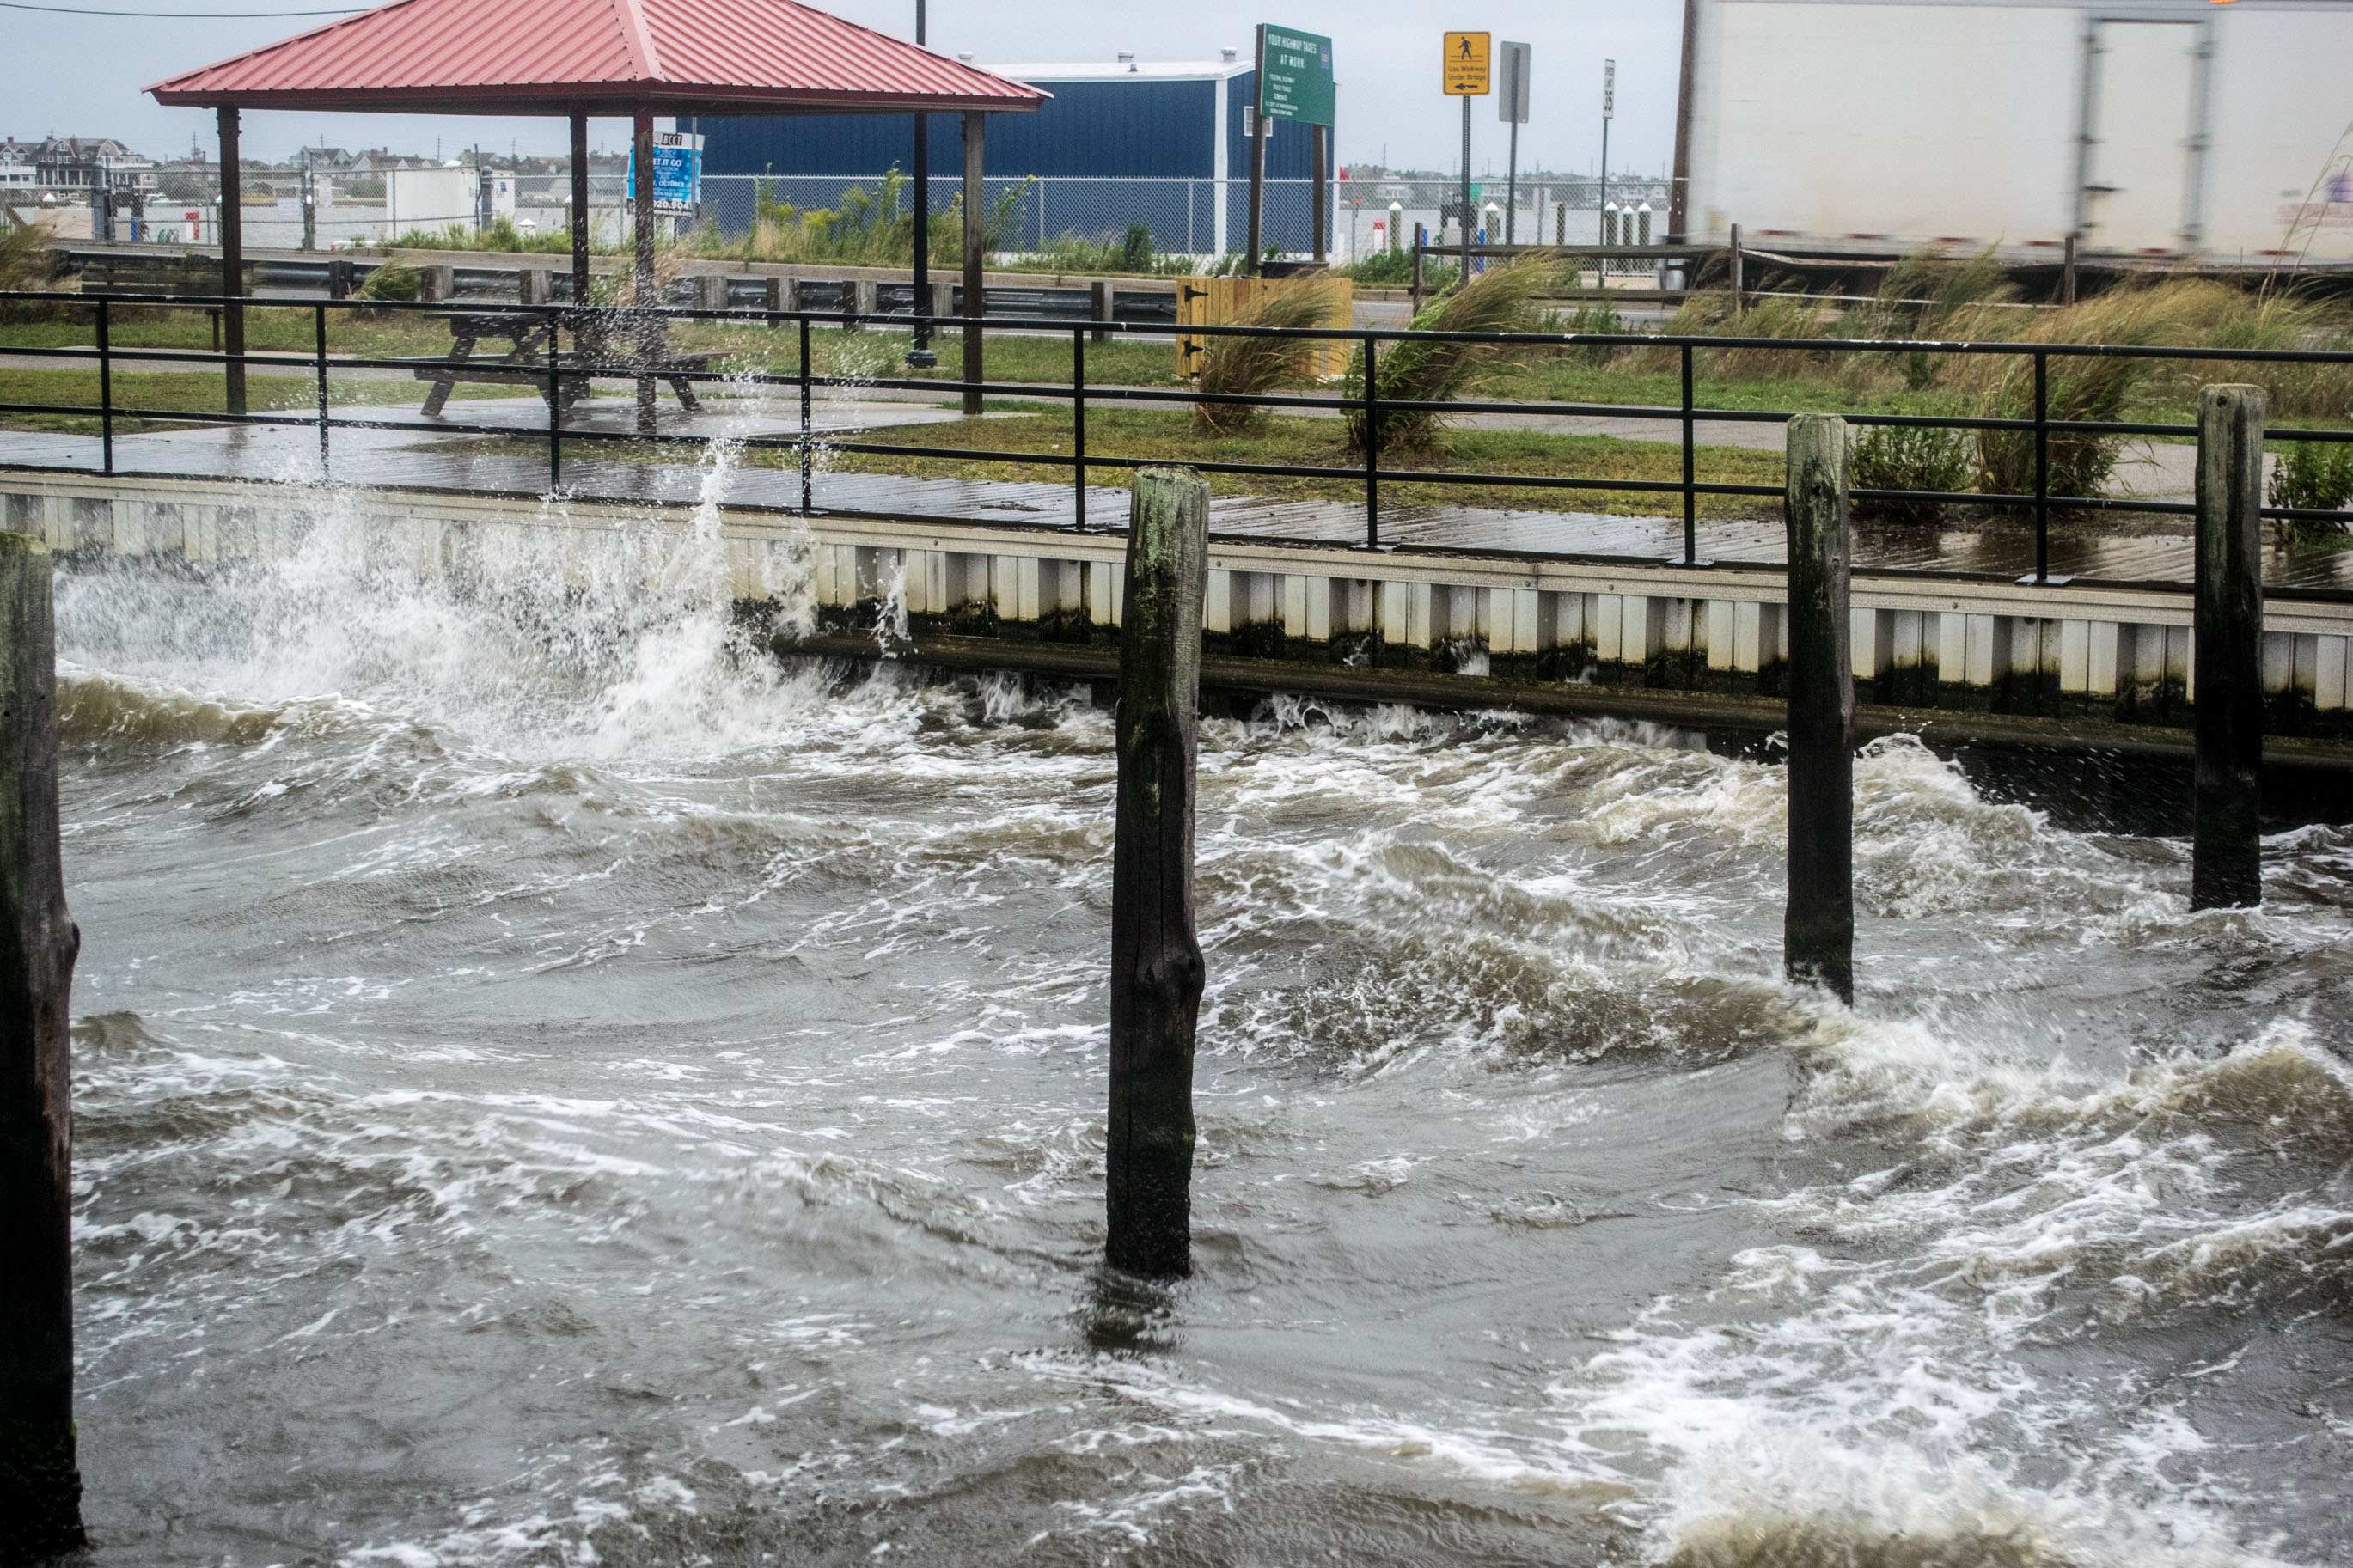 Waves impact Barnegat Bay near the Mantoloking Bridge. (Photo: Daniel Nee)